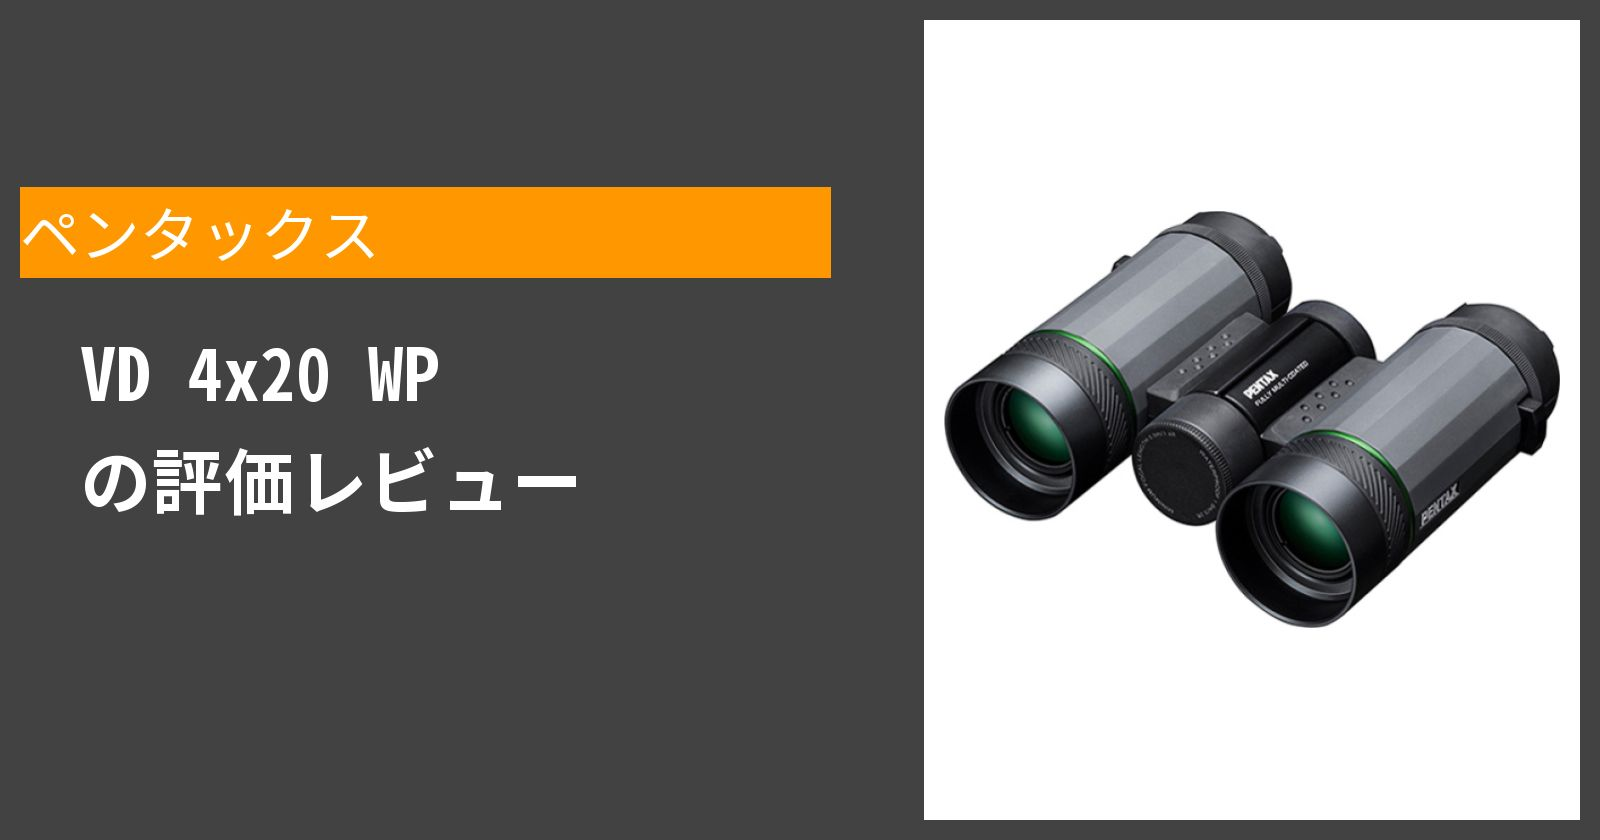 VD 4x20 WPを徹底評価